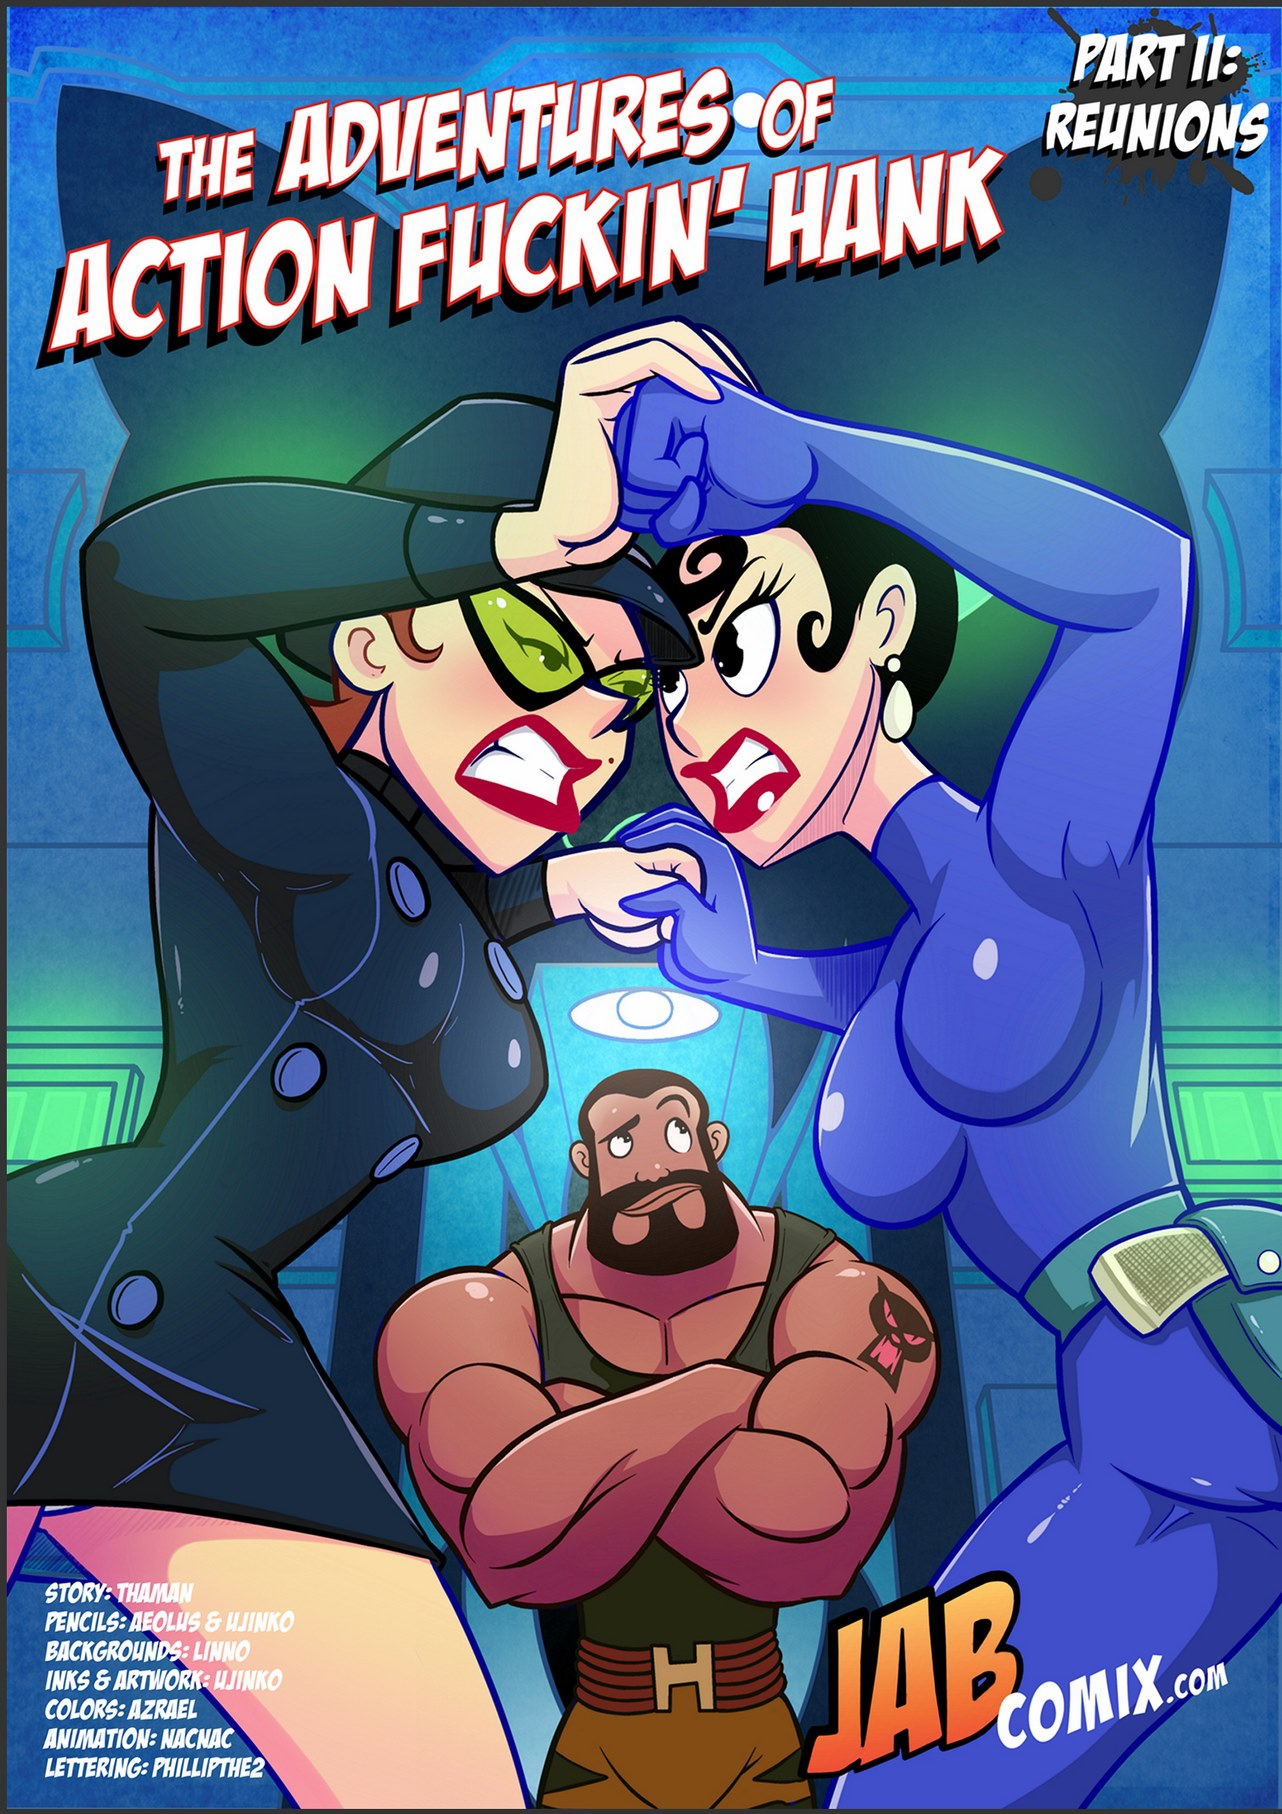 Goodcomix Dexter's Laboratory - [Jabcomix] - The Adventures Of Action Fuckin Hank Part.2 xxx porno